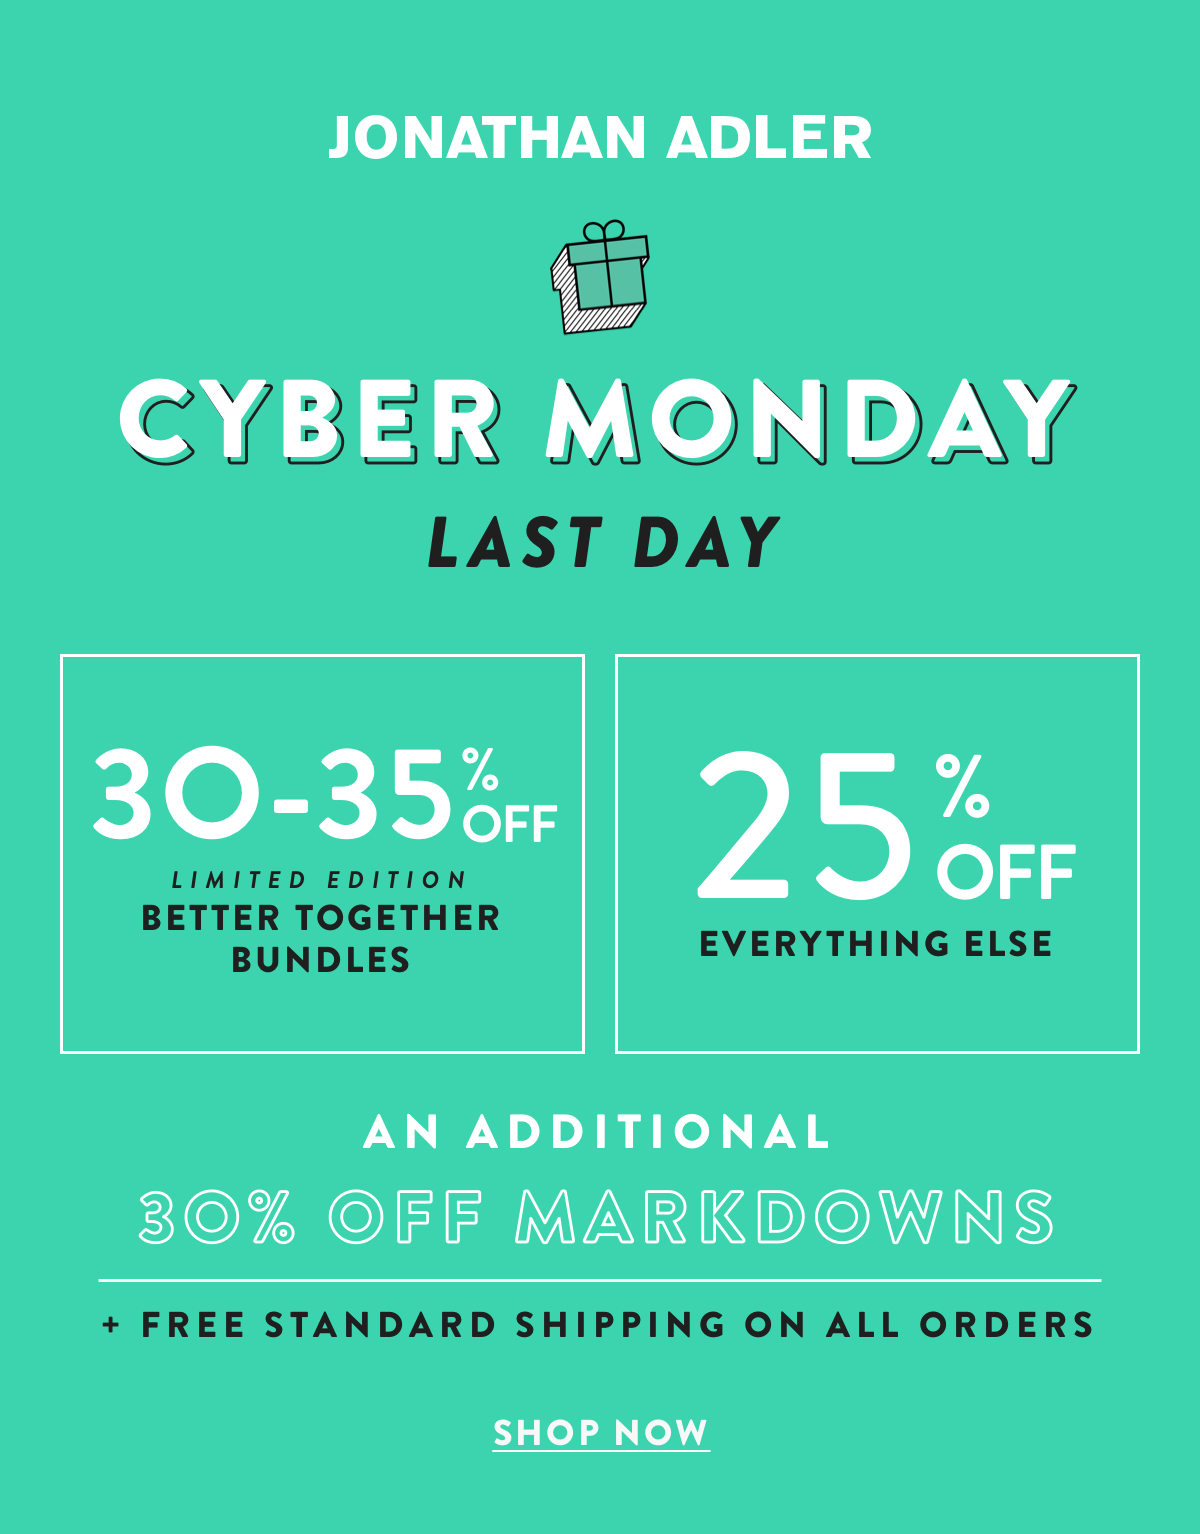 Cyber Monday Last Day | Shop Now